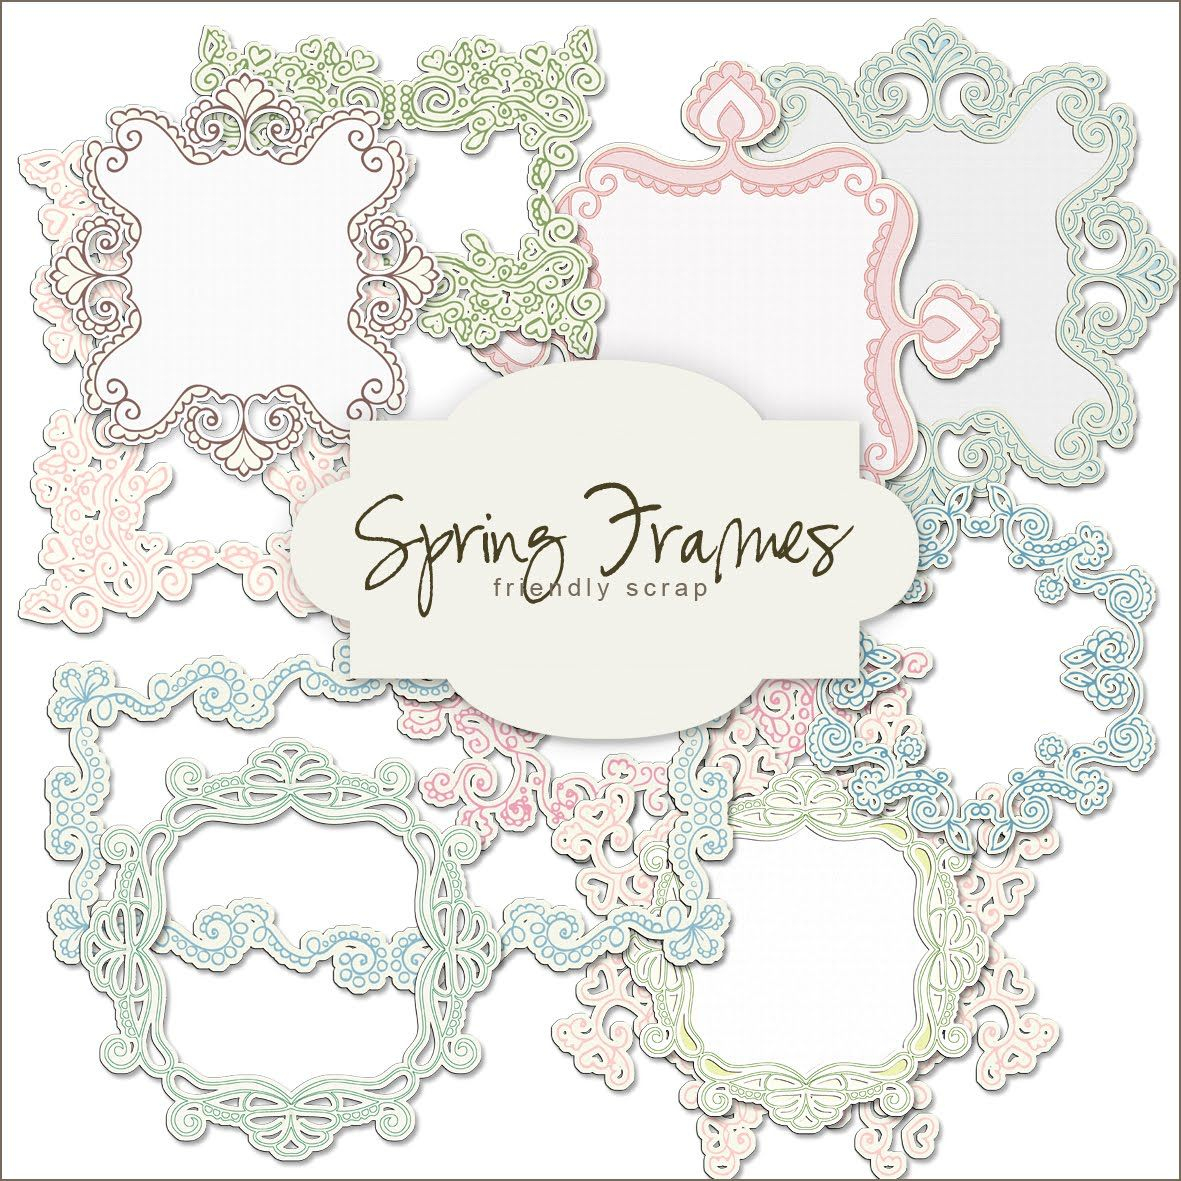 Friendly Scrap: Free Scrap Frame | Printable Frames | Scrapbook - Free Printable Frames For Scrapbooking